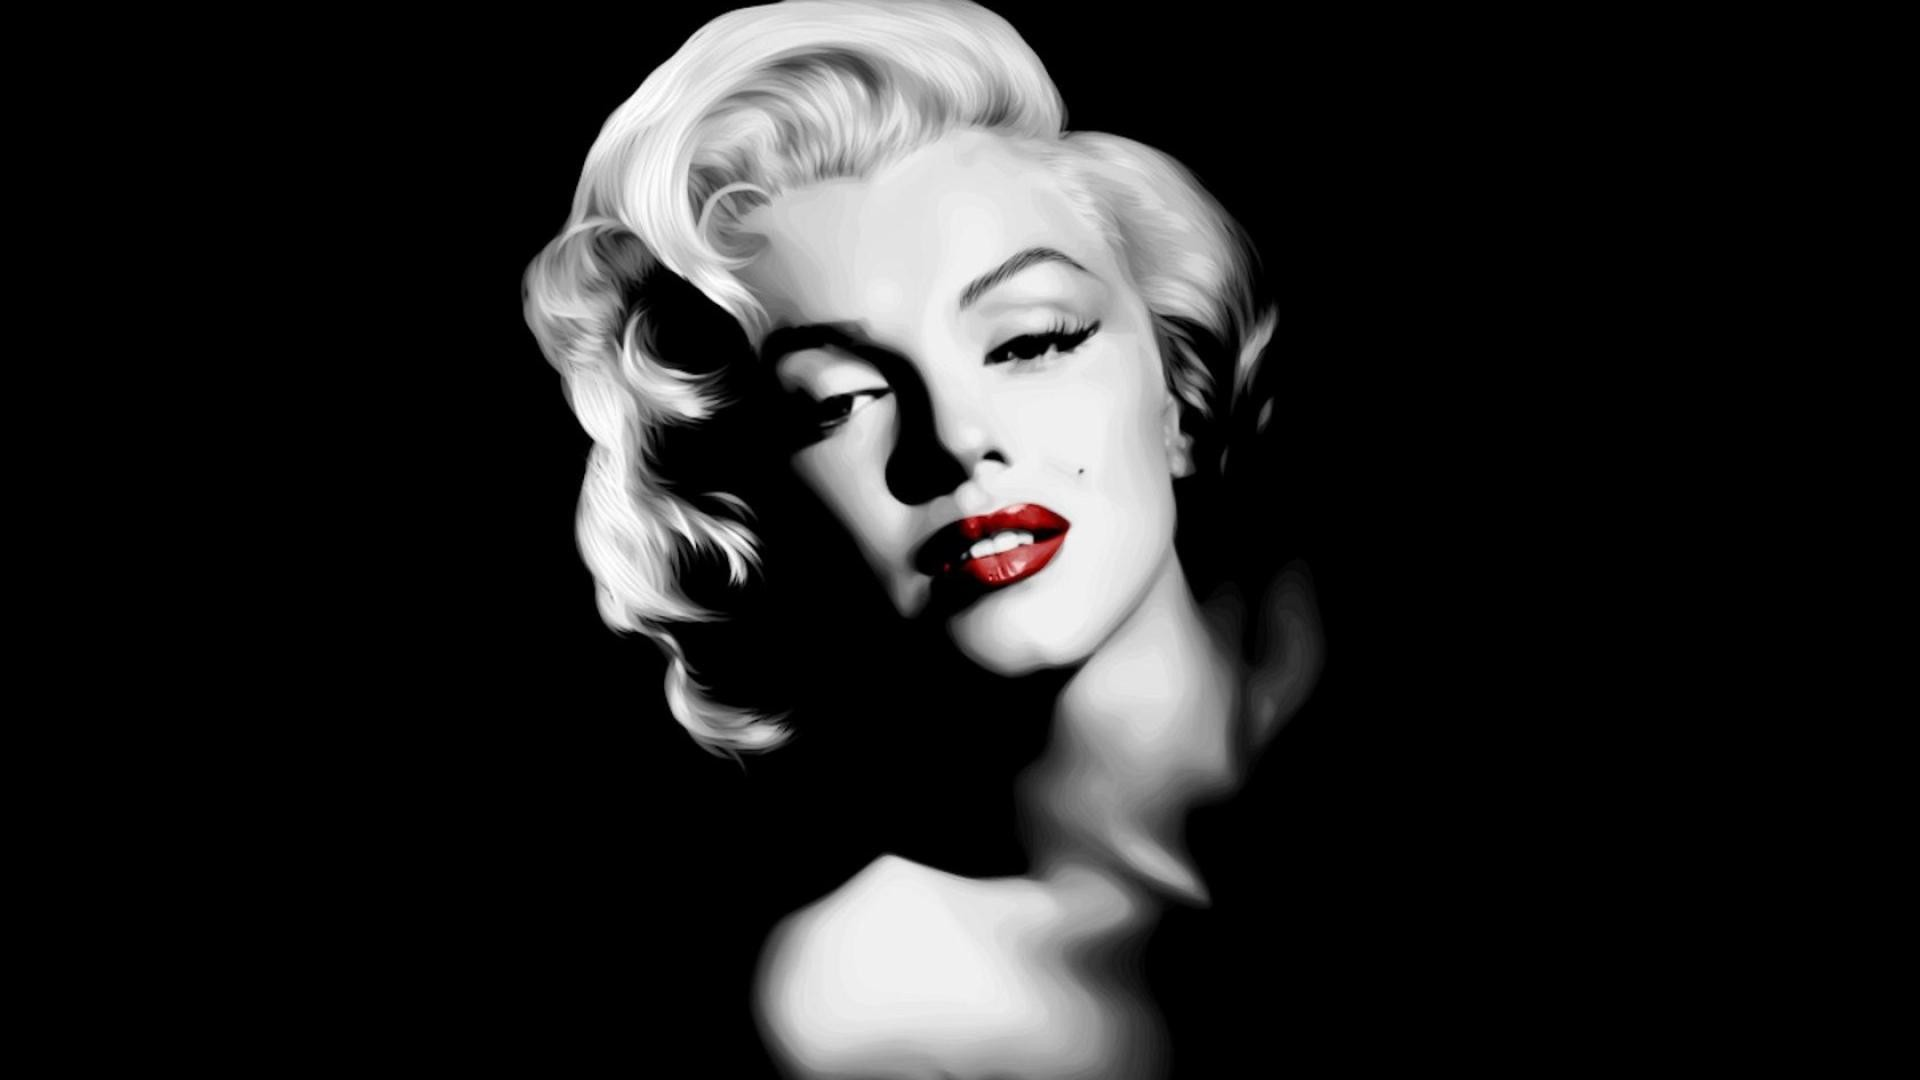 Marilyn Monroe Poster Black And White Image Tips